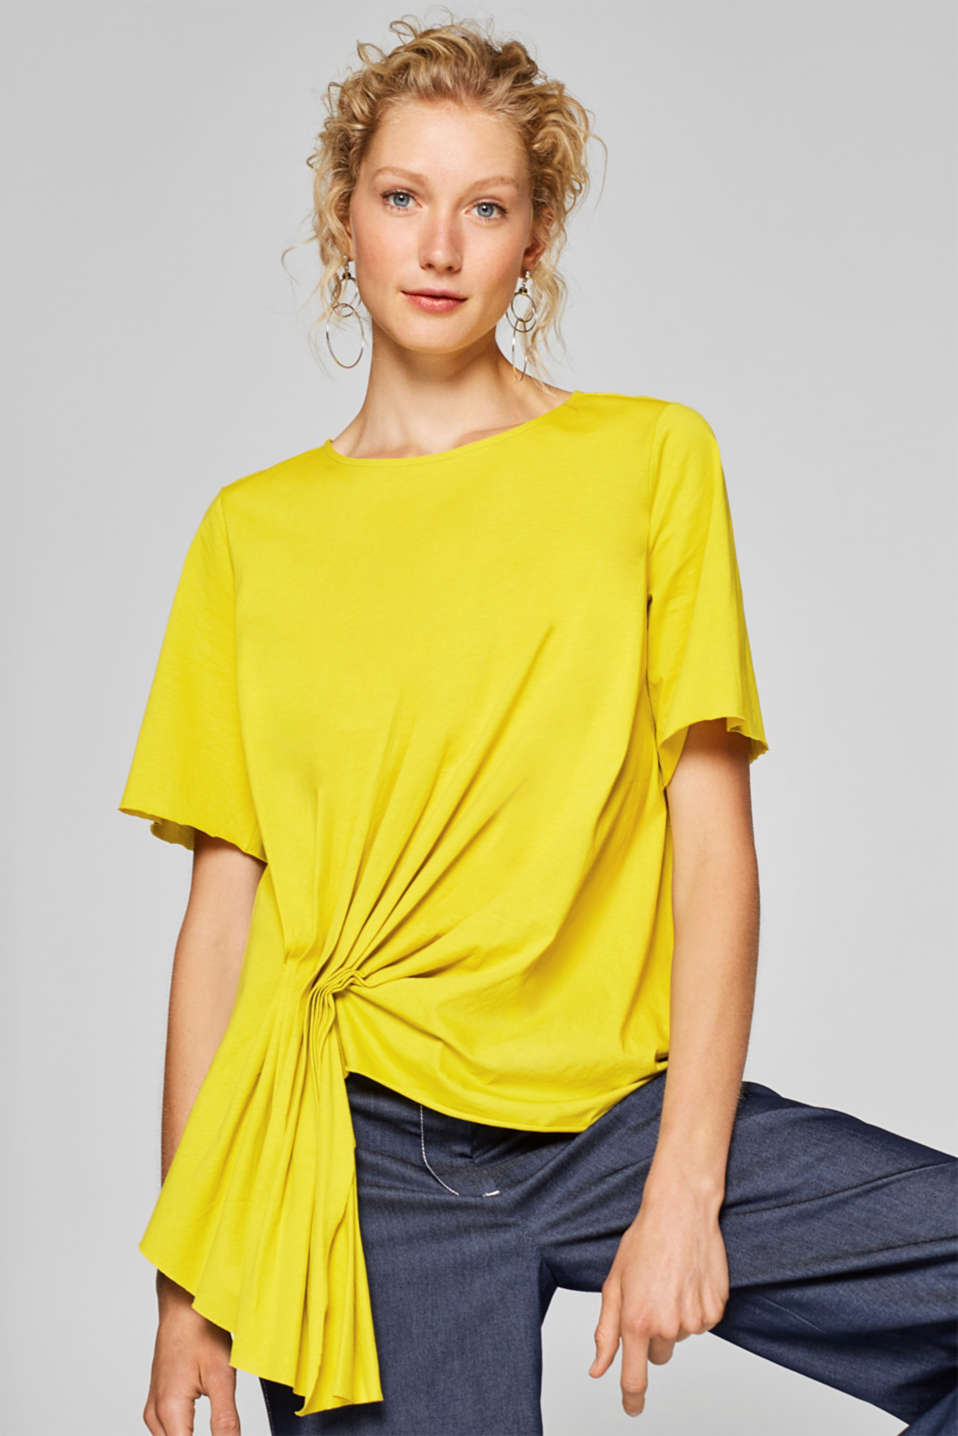 Esprit - Open-edged top with a drape, 100% cotton